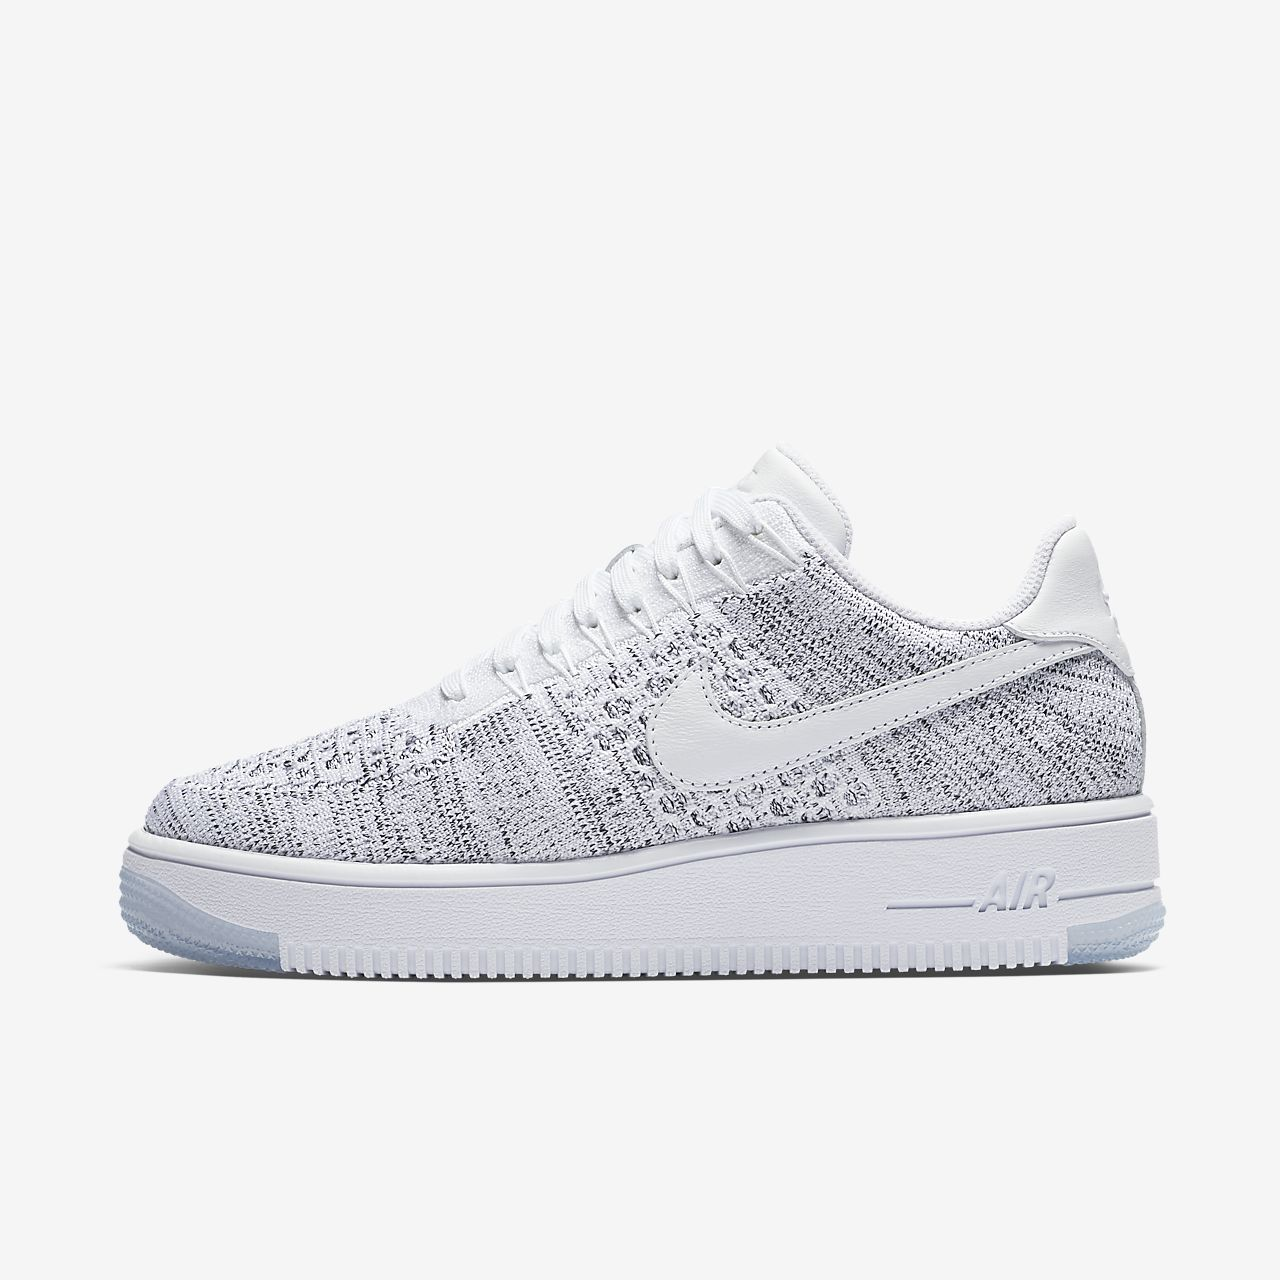 nike air force 1 ultra flyknit low herenschoen